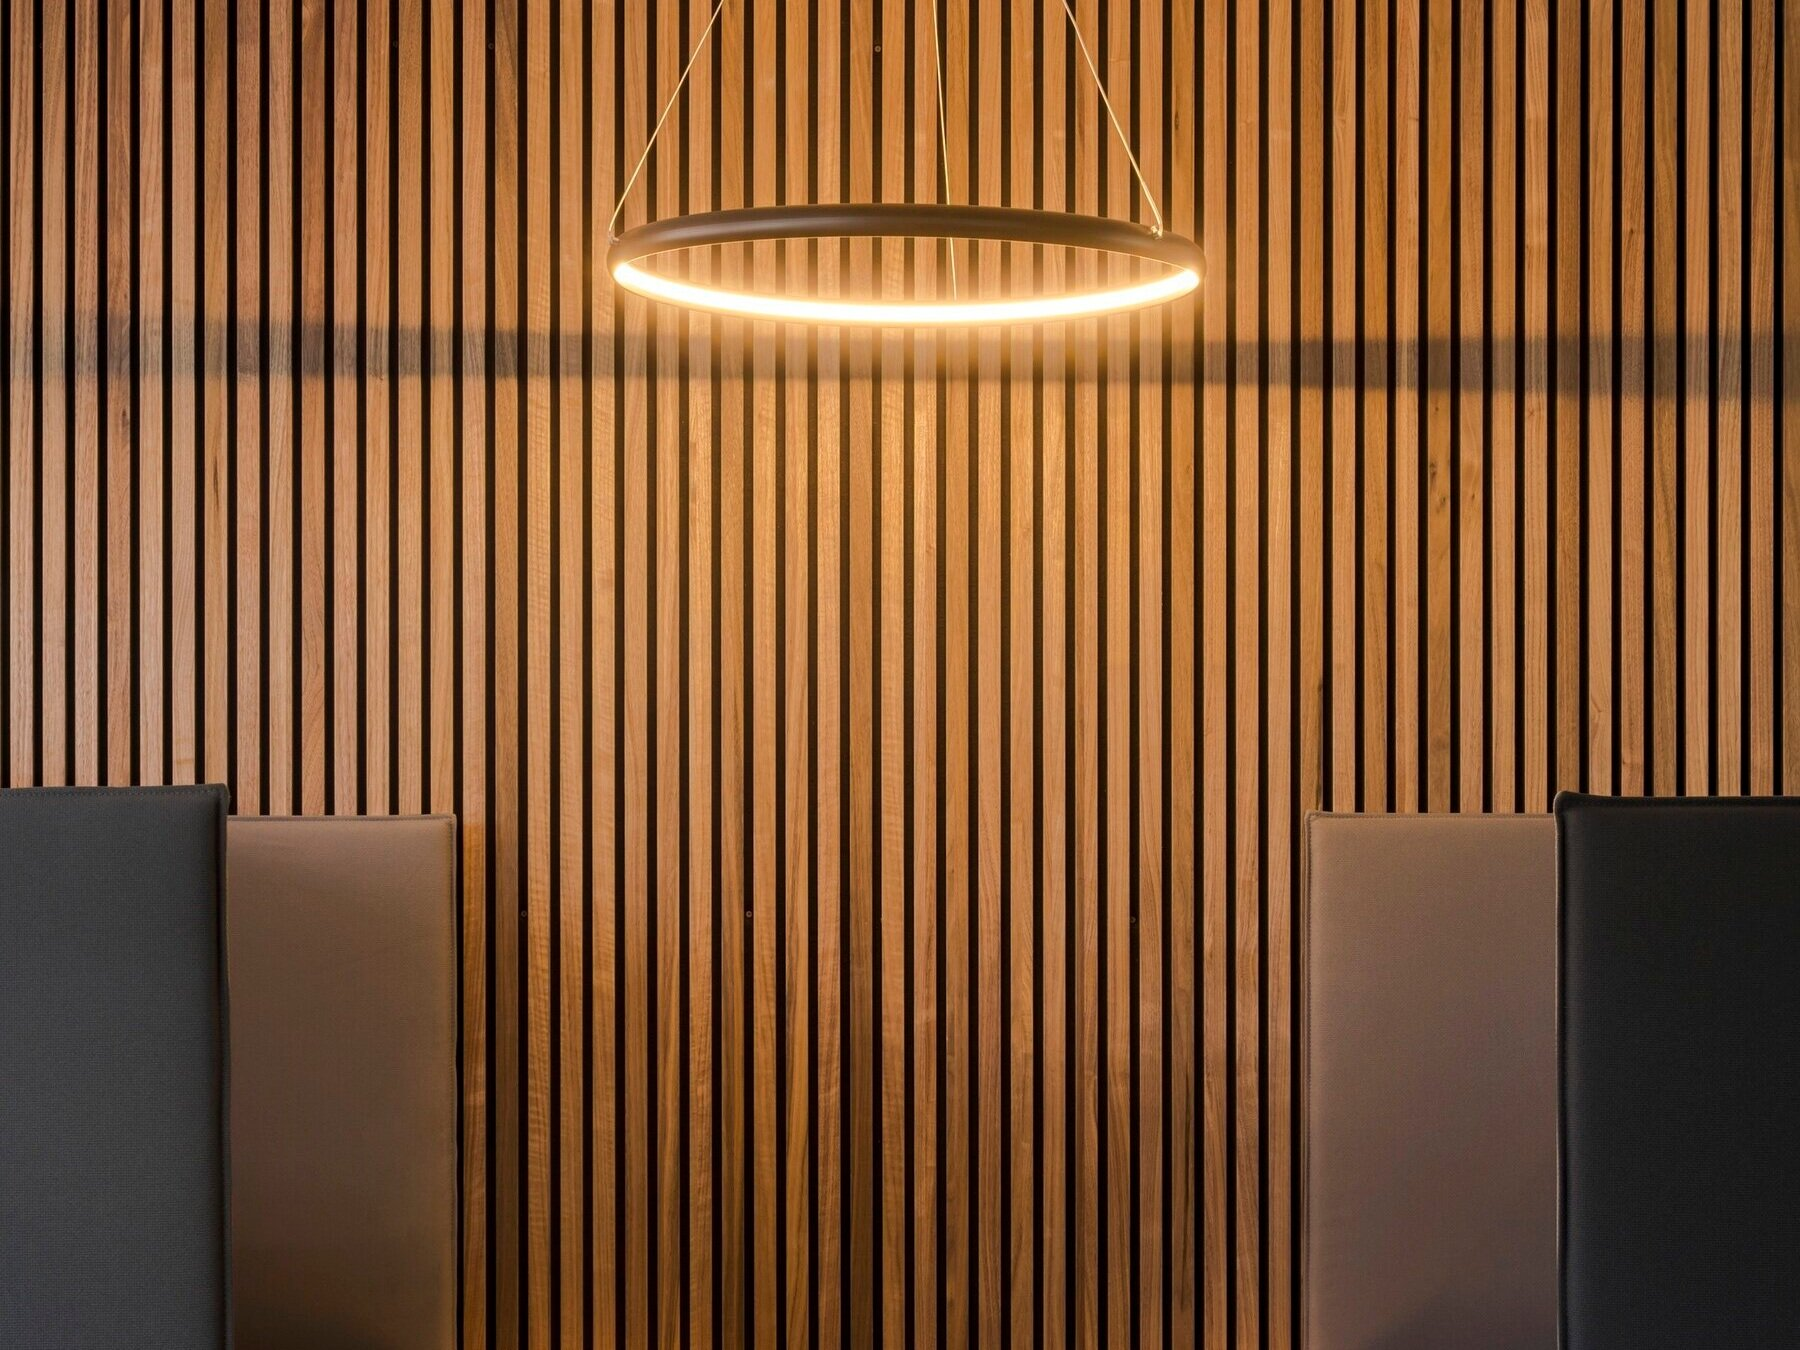 Acoustic Slat Wood Wall Ceiling Panels Commercial Application Interior Design Wall Panelling Acupanel